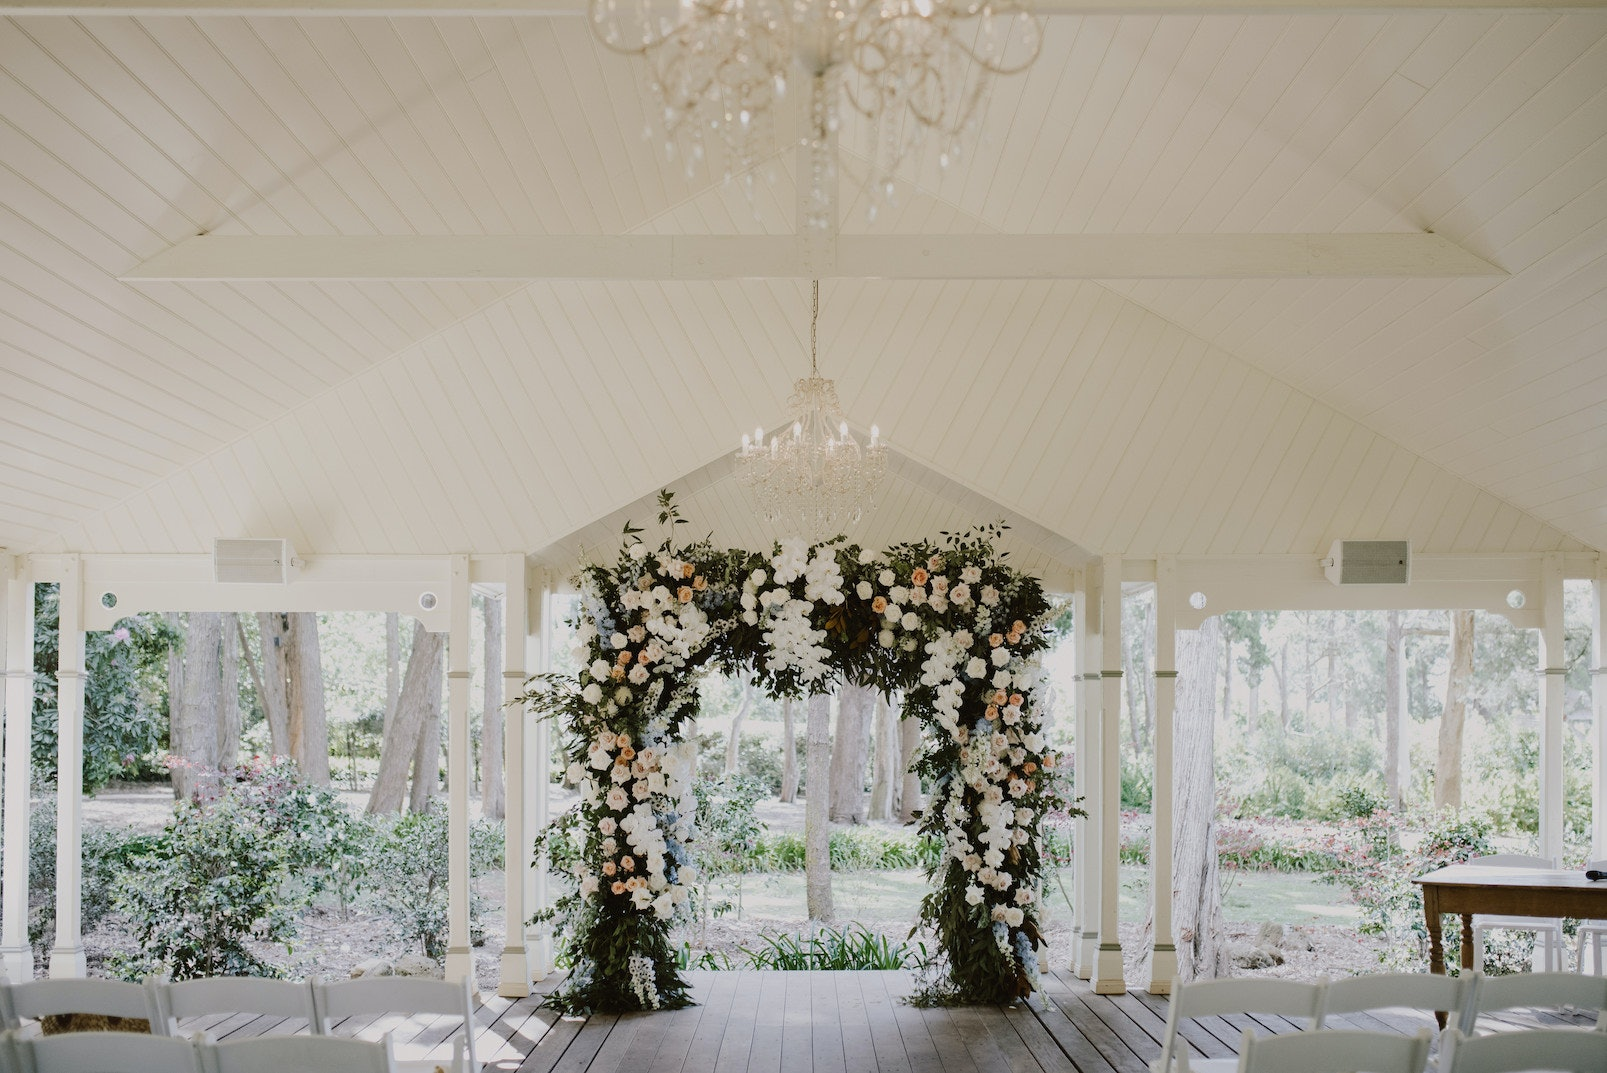 Floral laden wedding arbour in the middle of a wedding pavilion